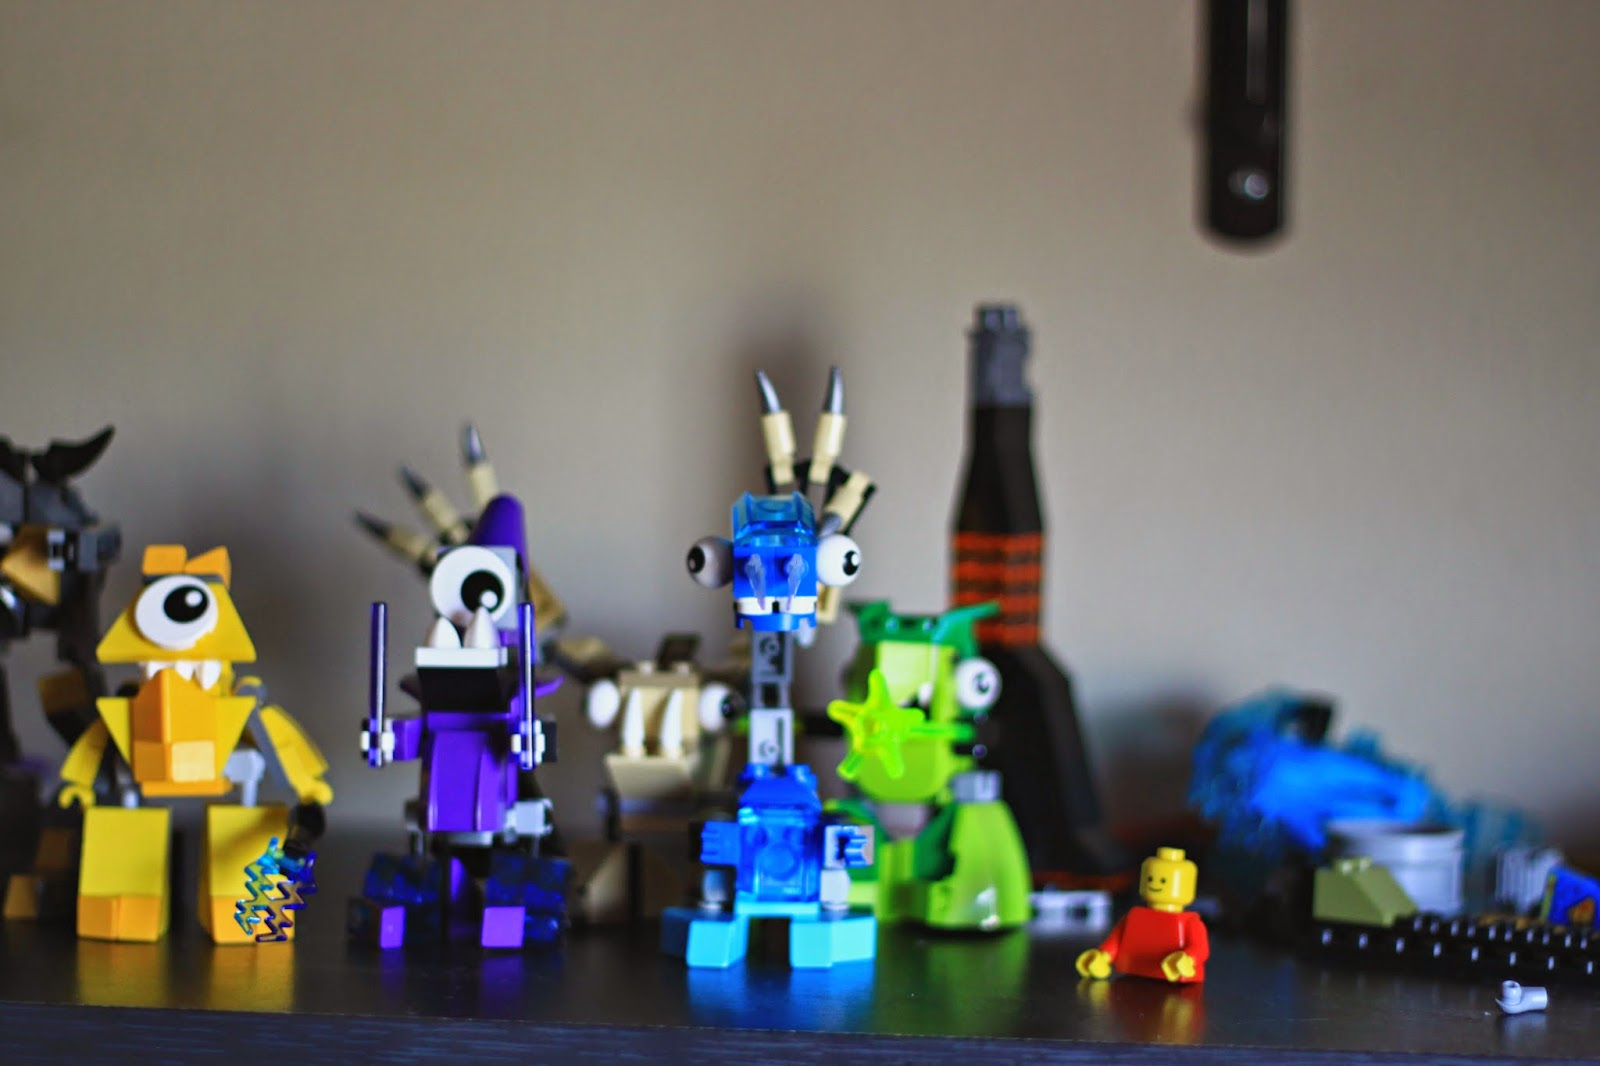 Sam's_World_Autism_Lego_Mixels_Creations_Bunny_Ears